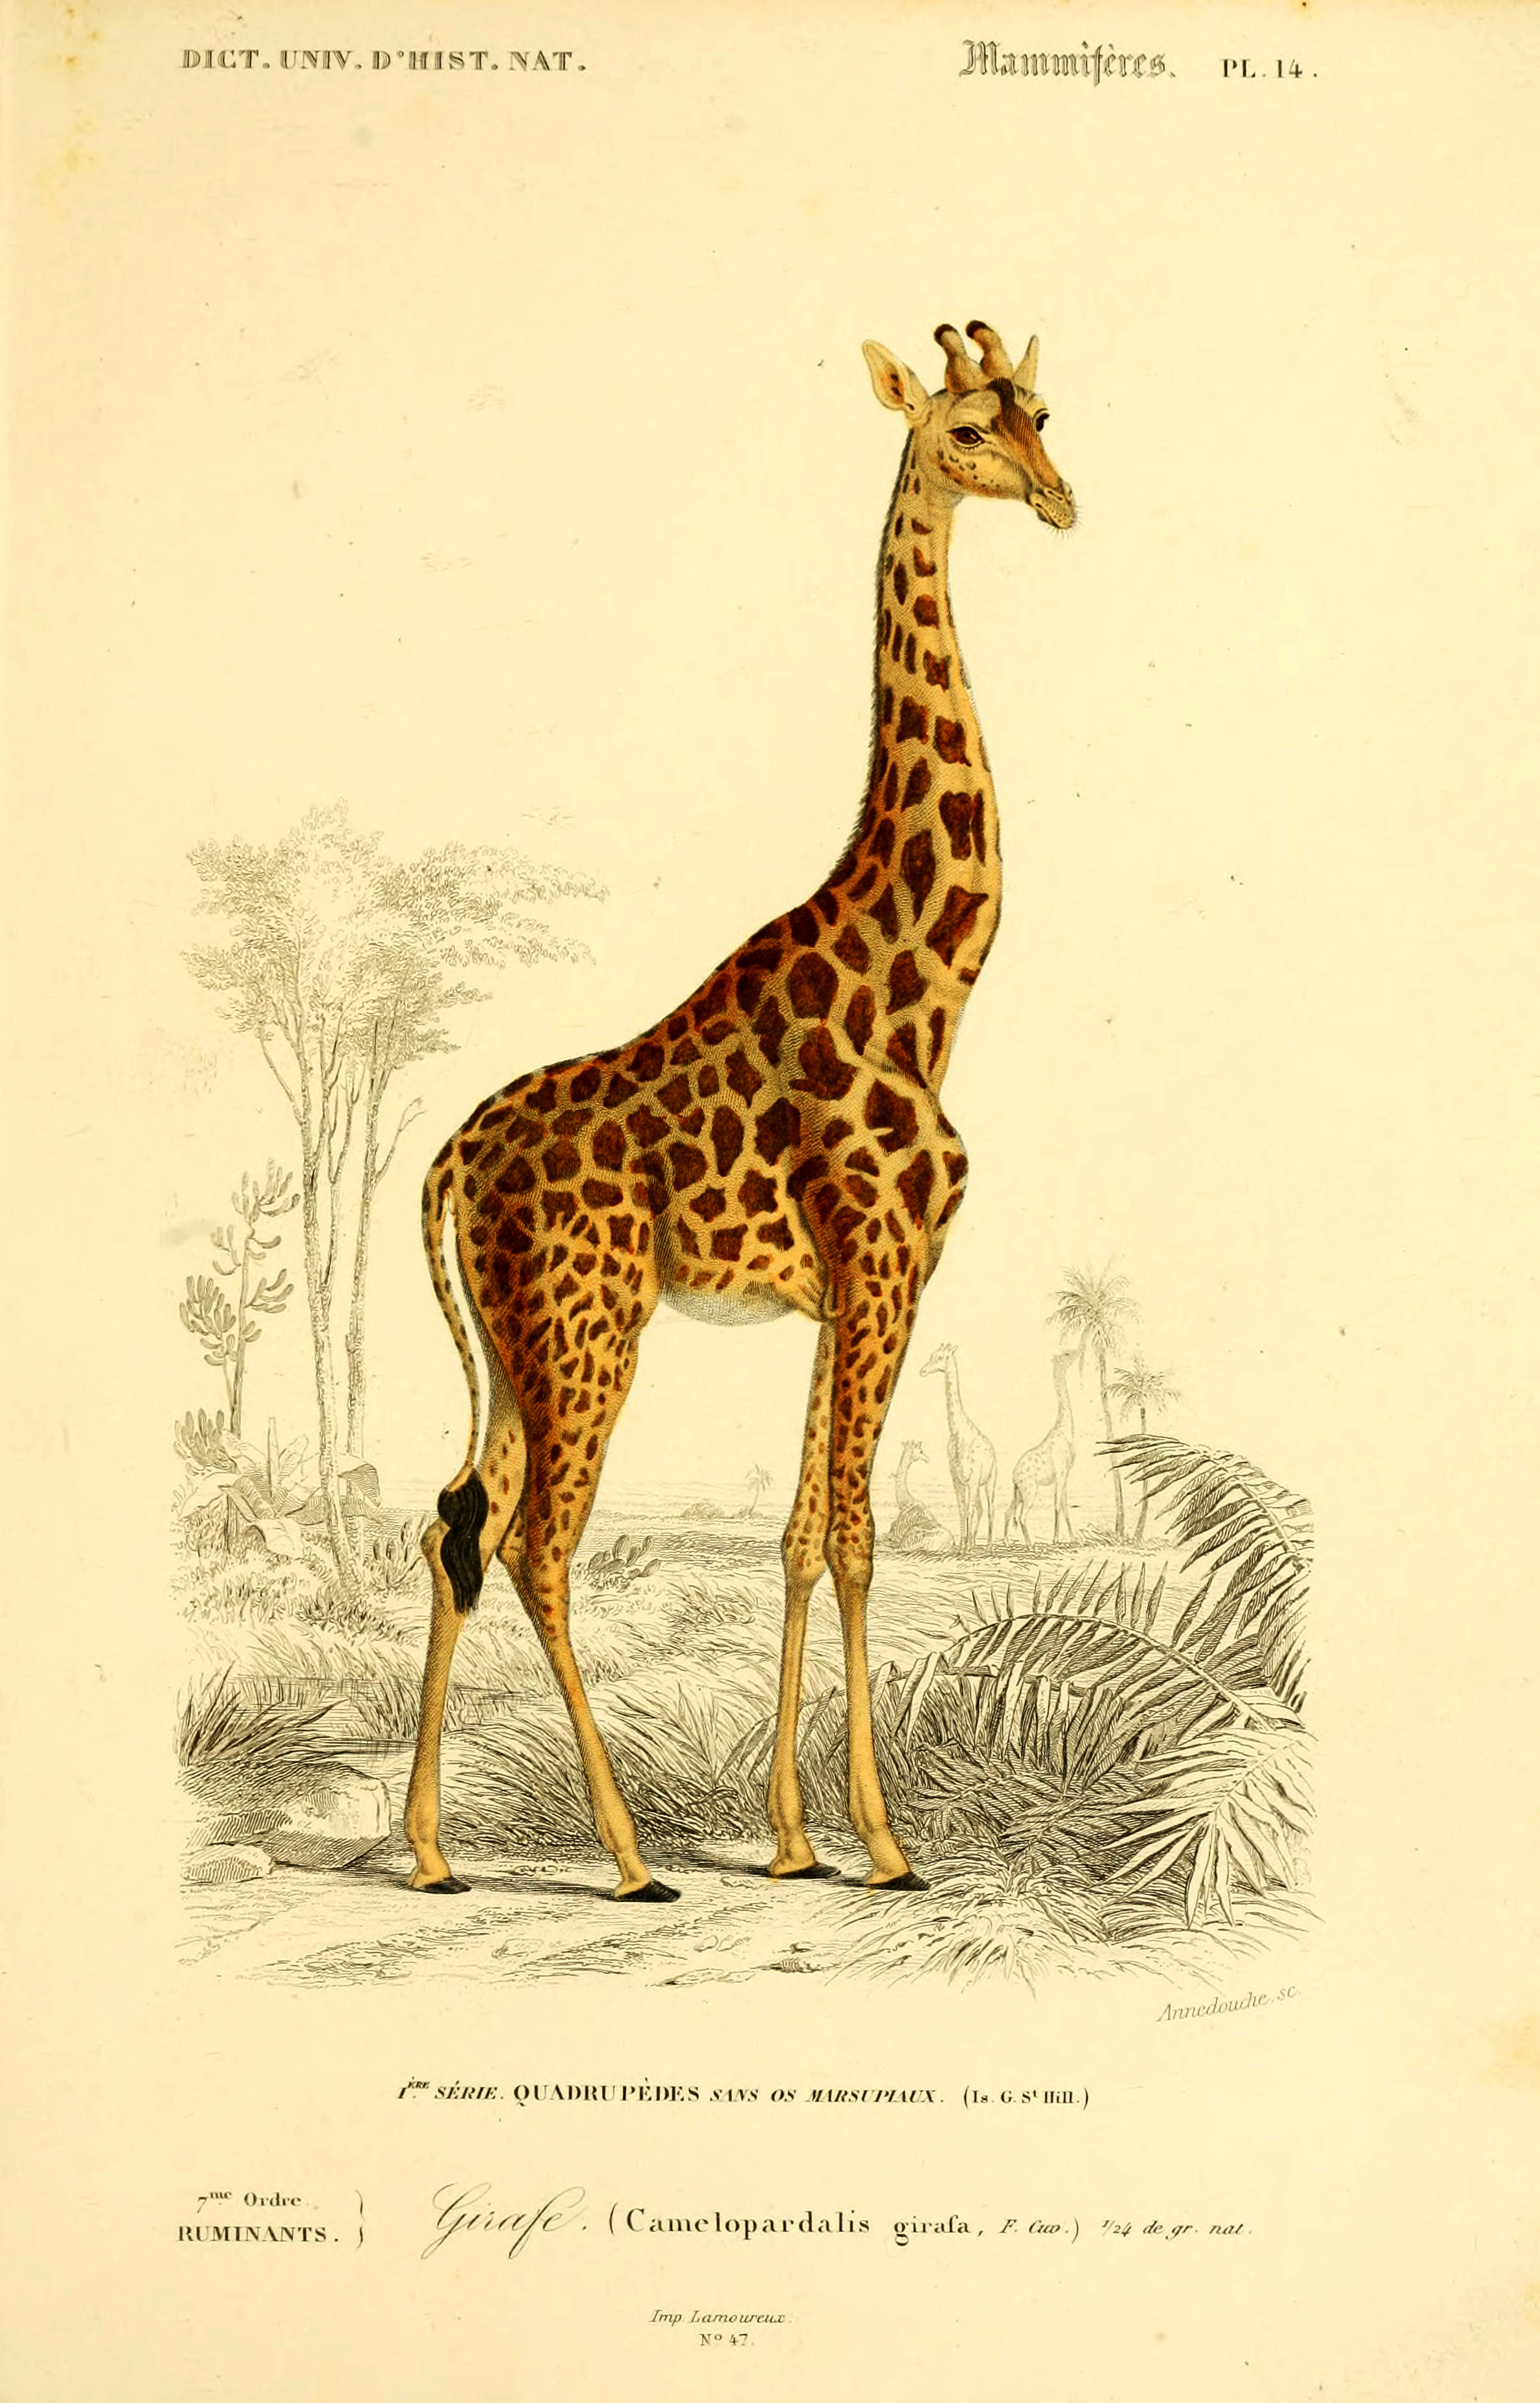 - Amazing Royalty Free Vintage Animal Prints To Download - Picture